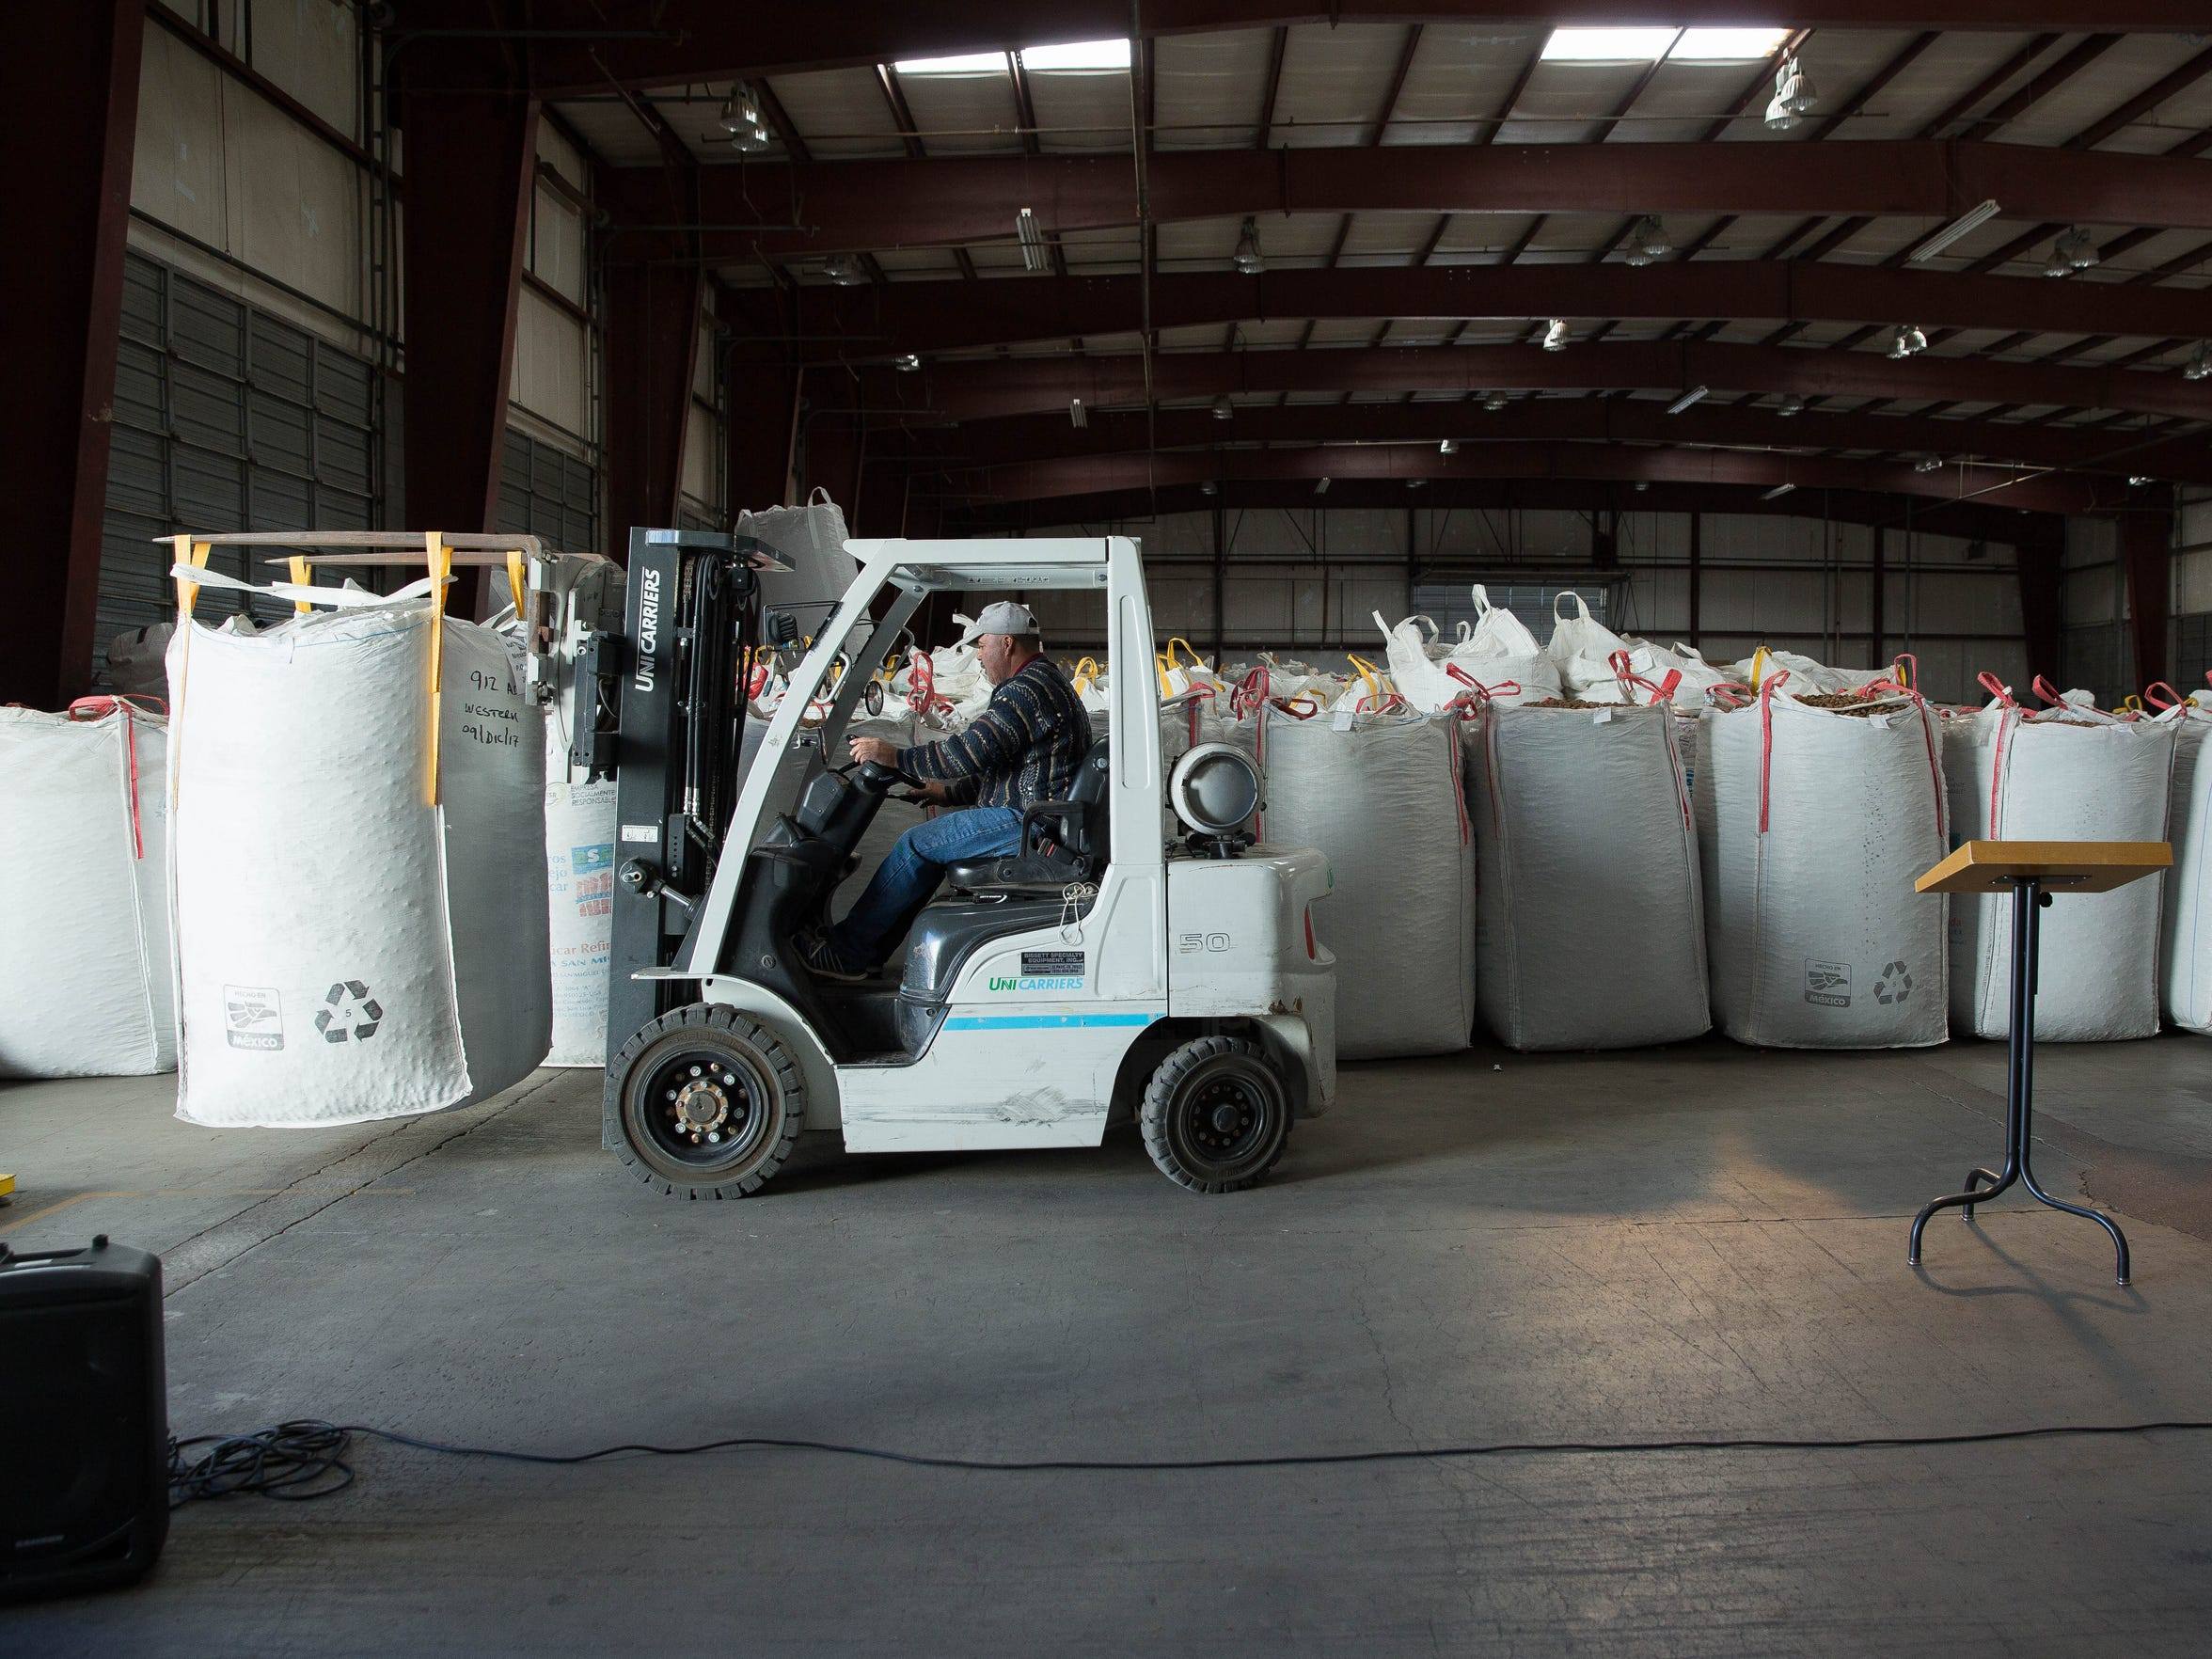 A worker at San Saba Pecan moves containers of pecans around the warehouse, before a press conference was held discussing the Pecan weevil quarantine and the theft of pecans in Doña Ana County. Wednesday Dec. 20, 2017.